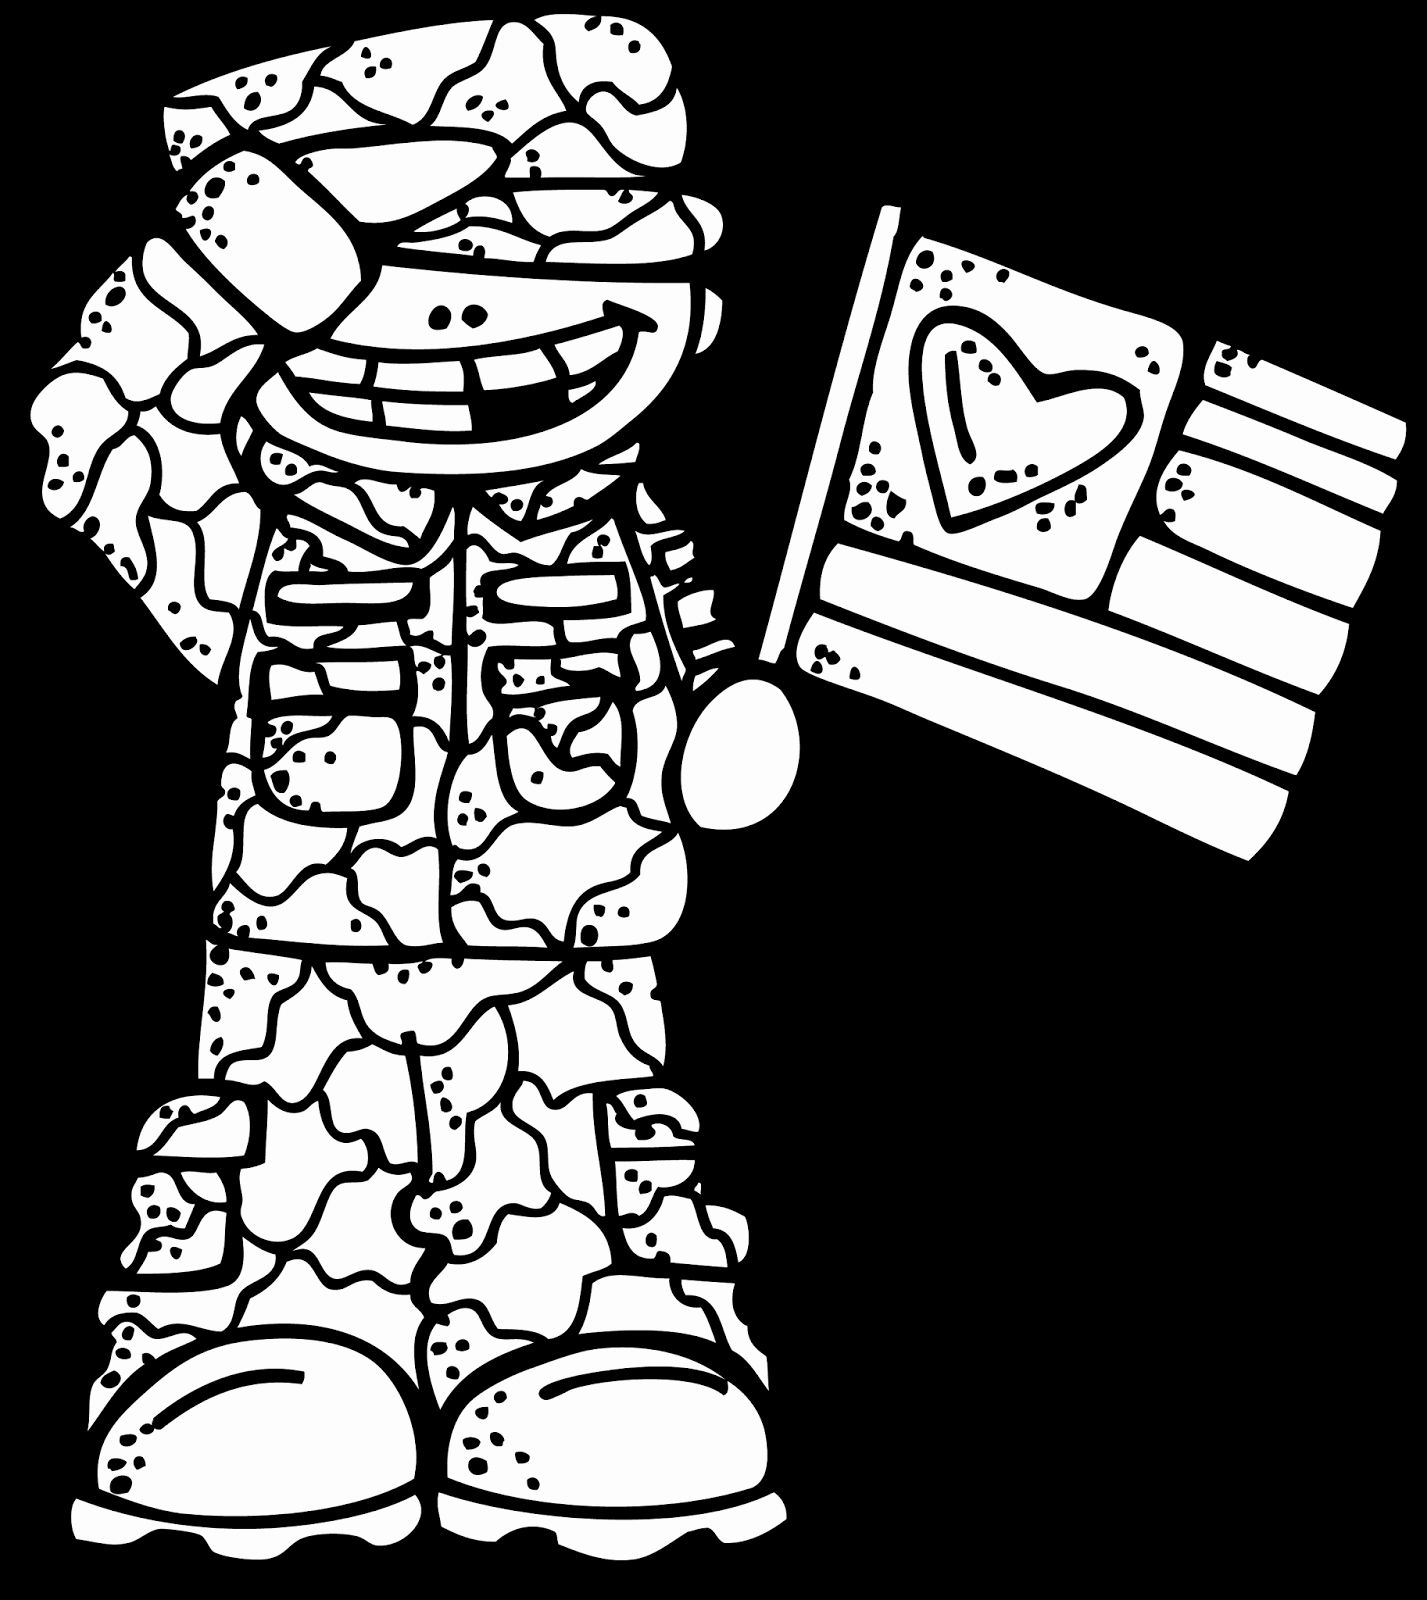 Military Christmas Coloring Pages Lovely Sol R Christmas Coloring Page Military Christmas Christmas Coloring Pages Christmas Colors